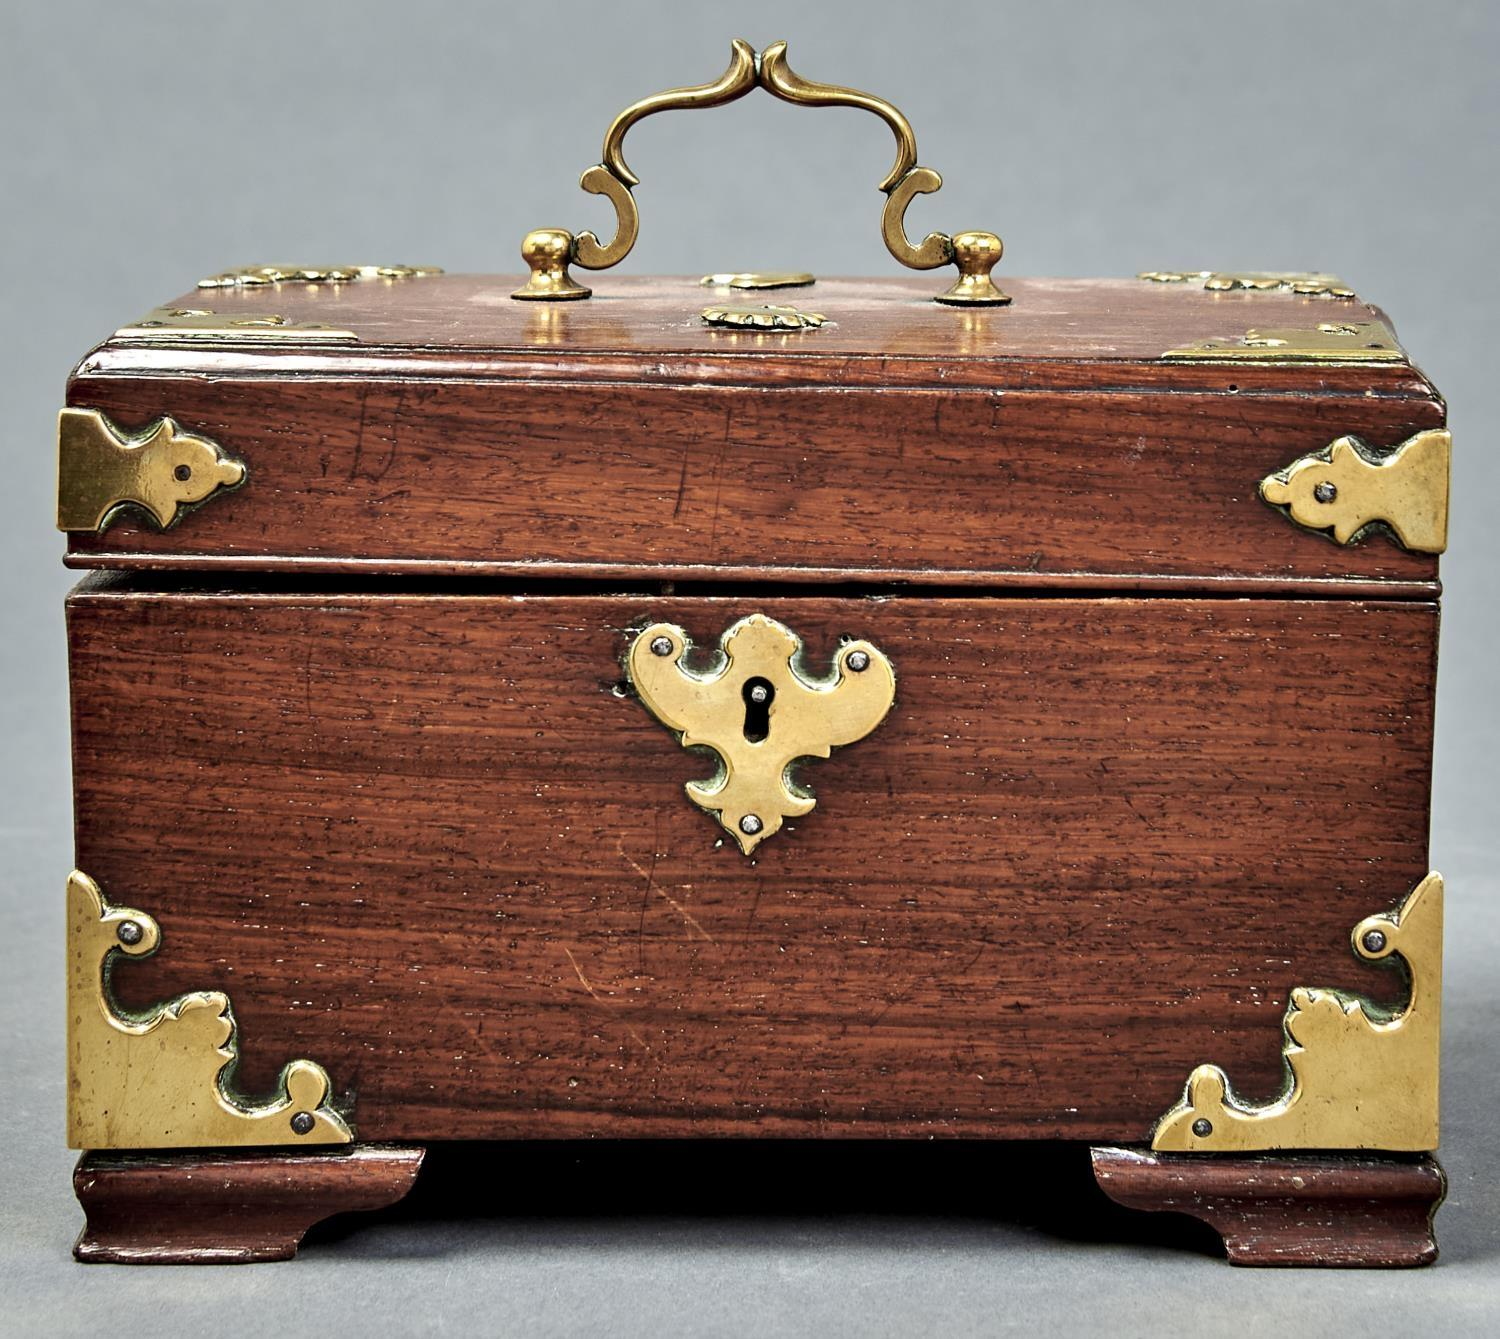 A GEORGE III BRASS MOUNTED PADOUK TEA CHEST, LATE 18TH C, THE MOUNTS LATER, THE INTERIOR